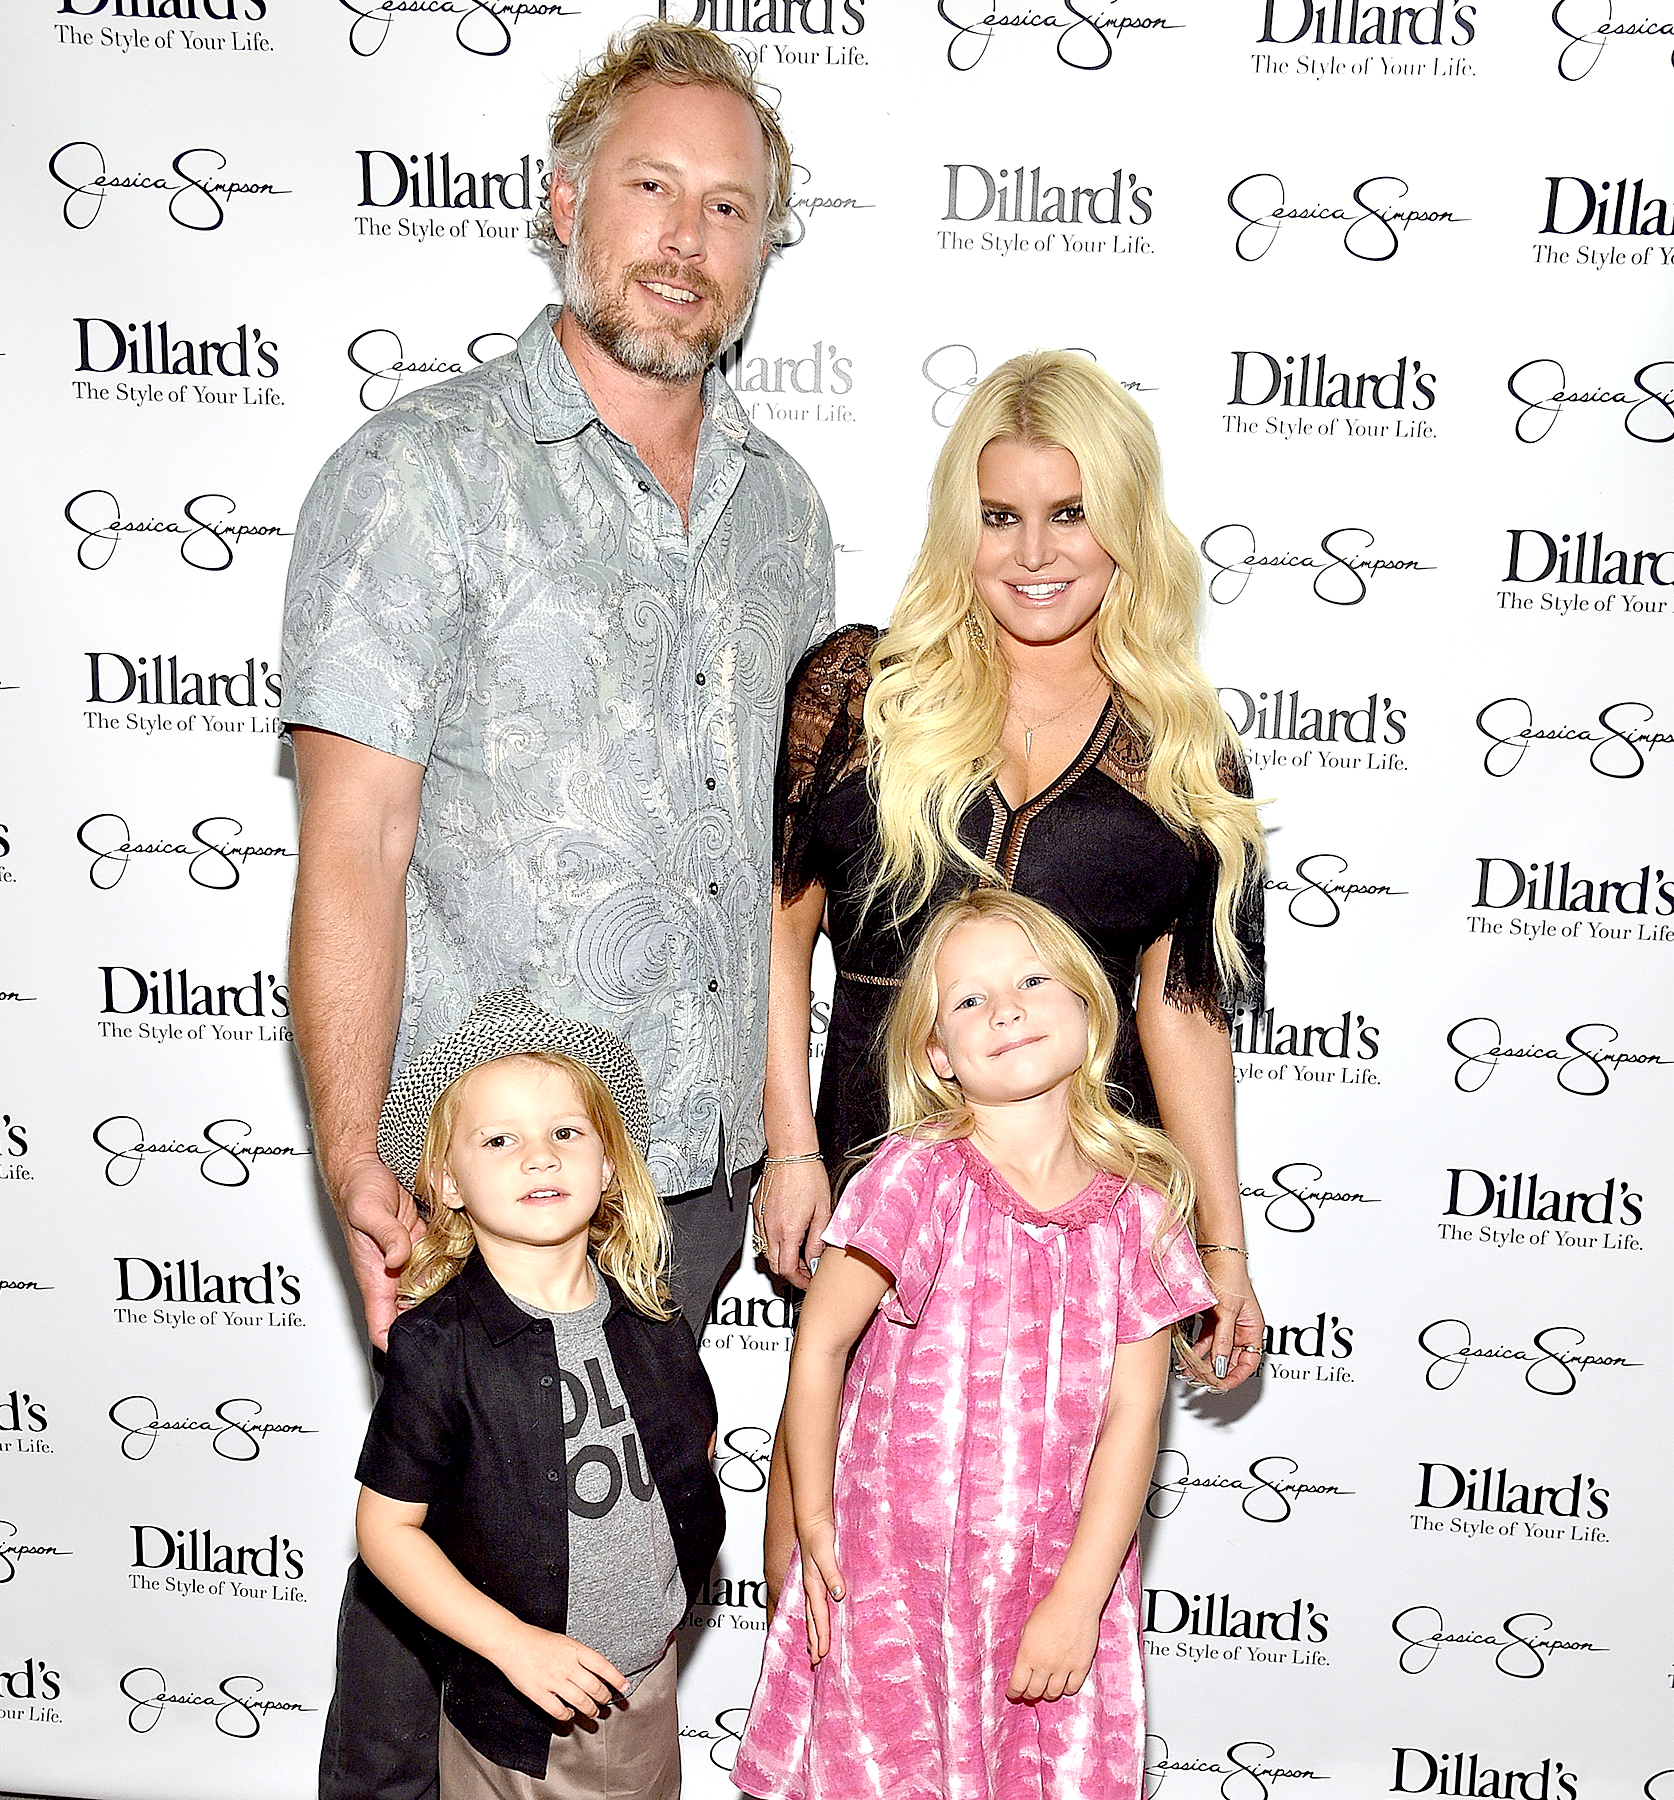 Eric Johnson, Ace Knute Johnson, Maxwell Drew Johnson and Jessica Simpson attend a spring style event benefitting The Boys and Girls Clubs of Waco, TX at at Dillard's on May 6, 2017 in Waco, Texas.